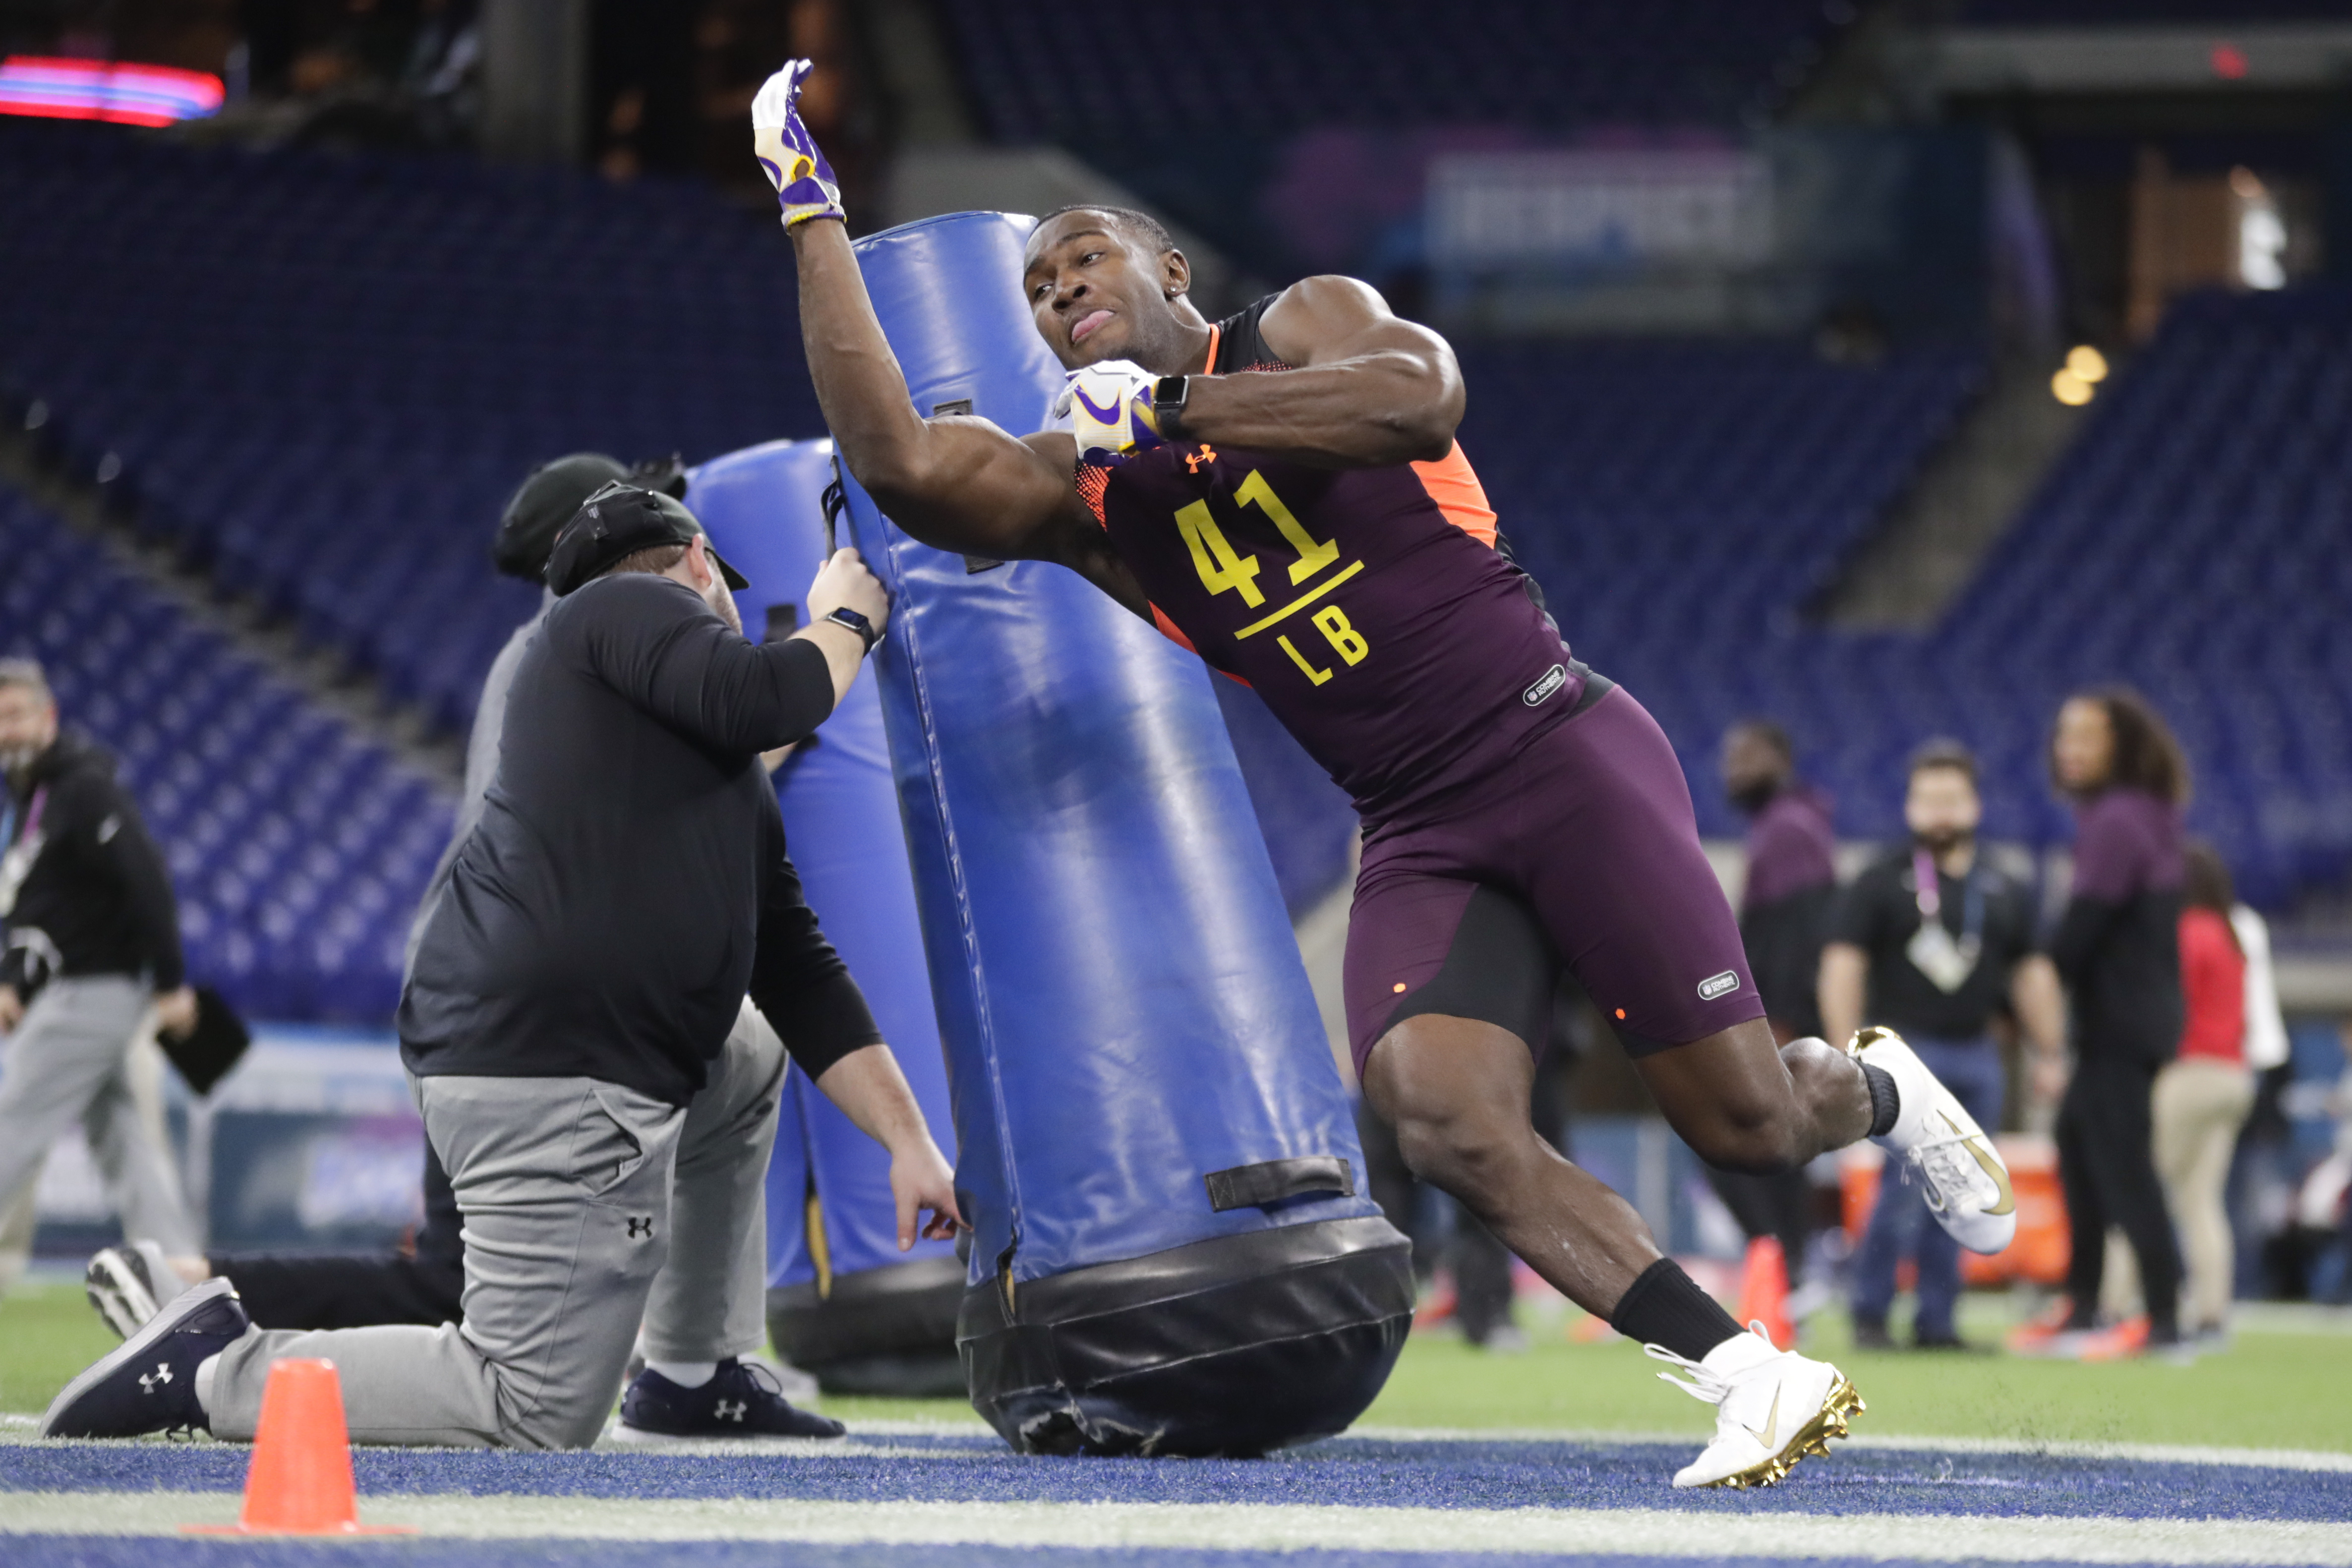 0b0a0bd0 2019 NFL draft: The top positional needs for all 32 teams - The ...